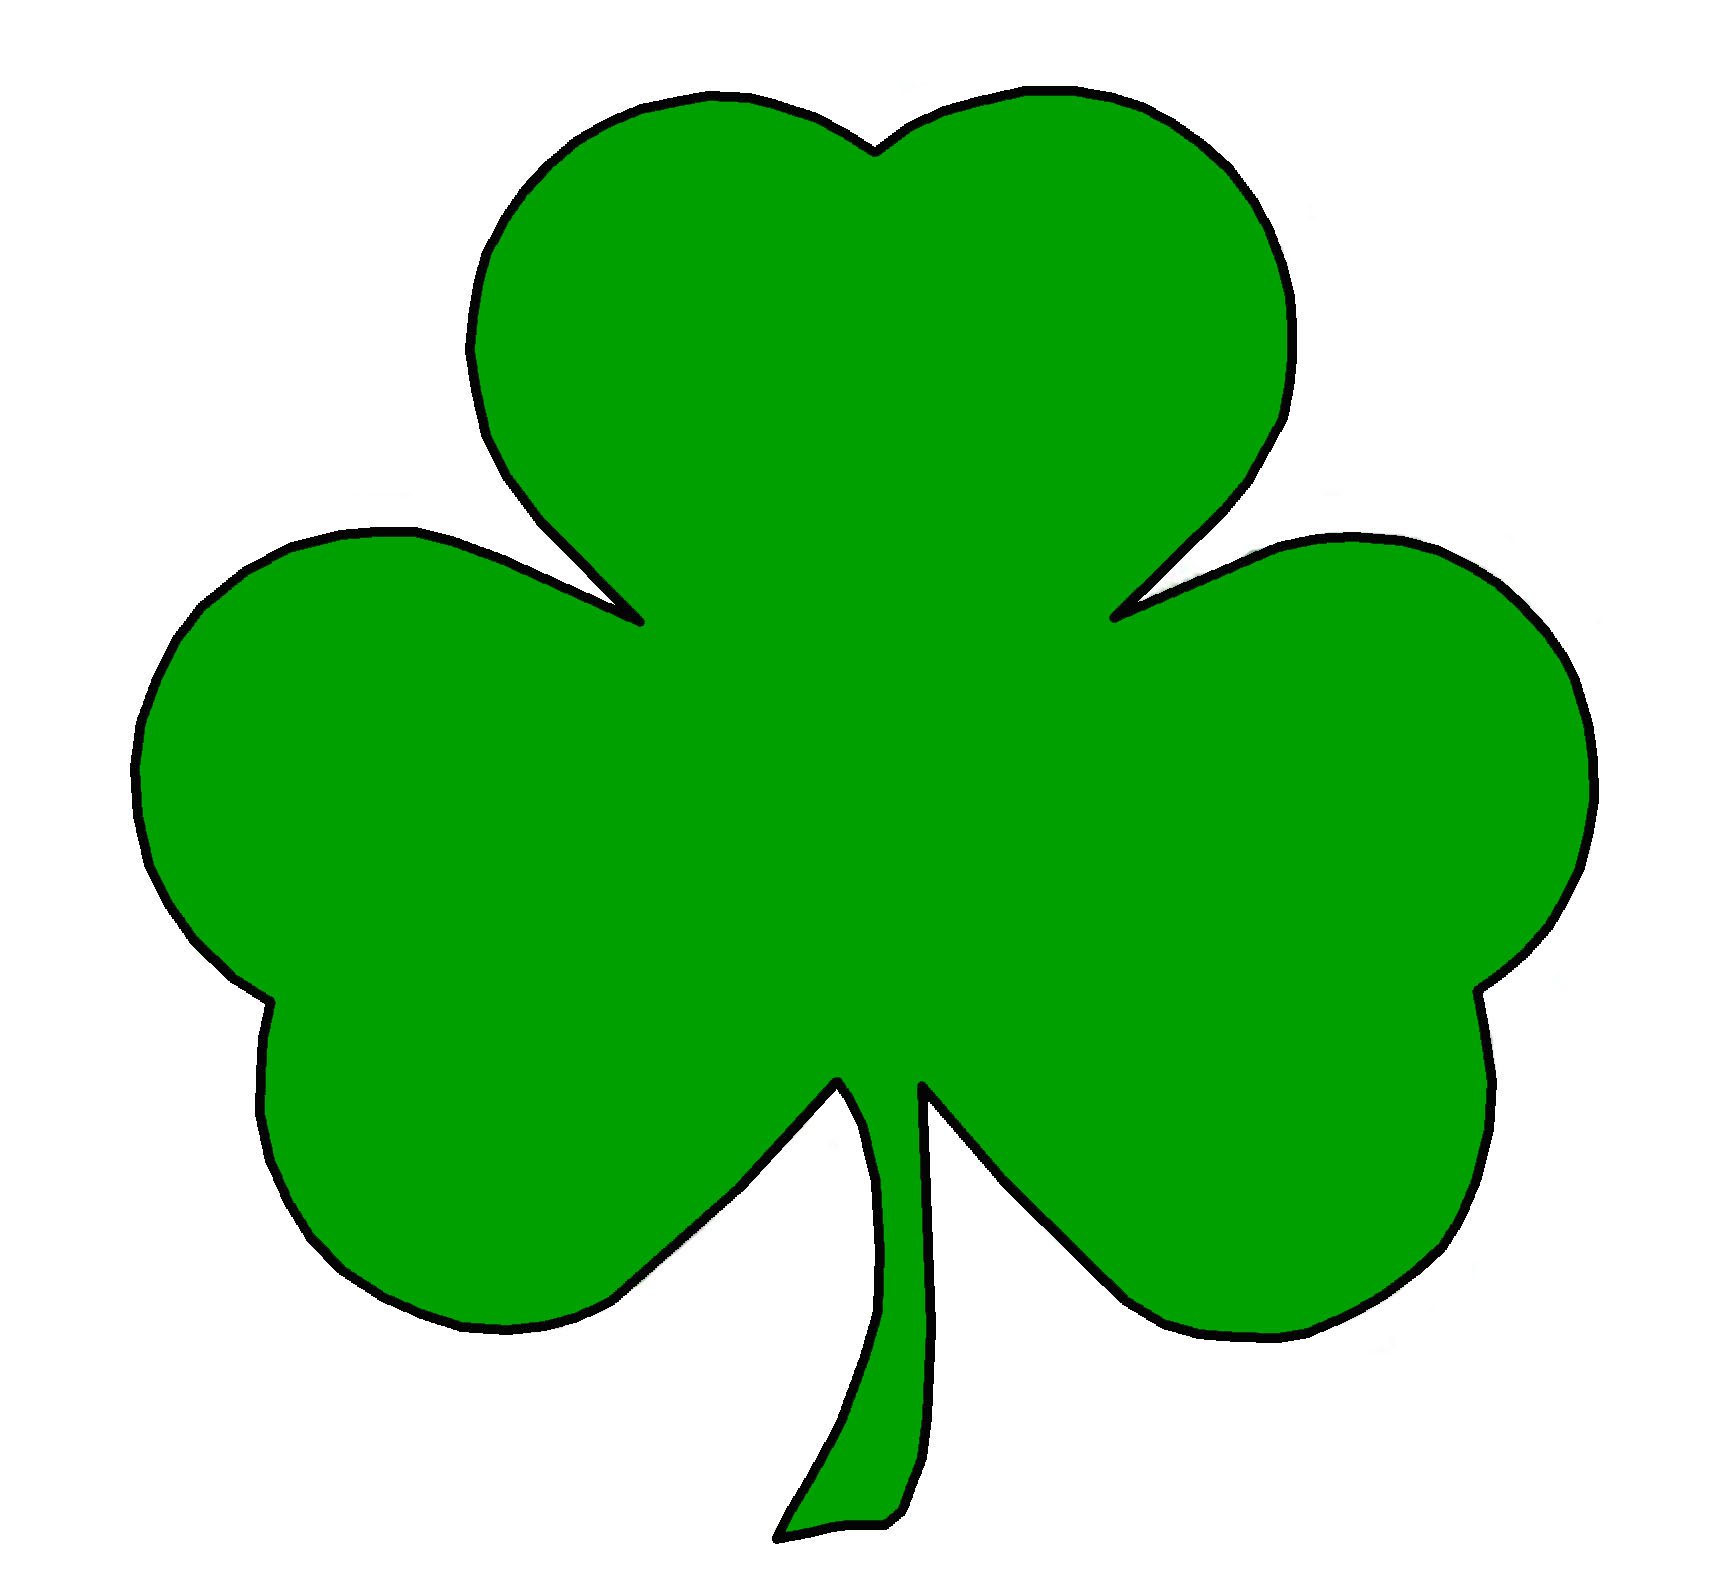 Simplicity image for printable shamrock images